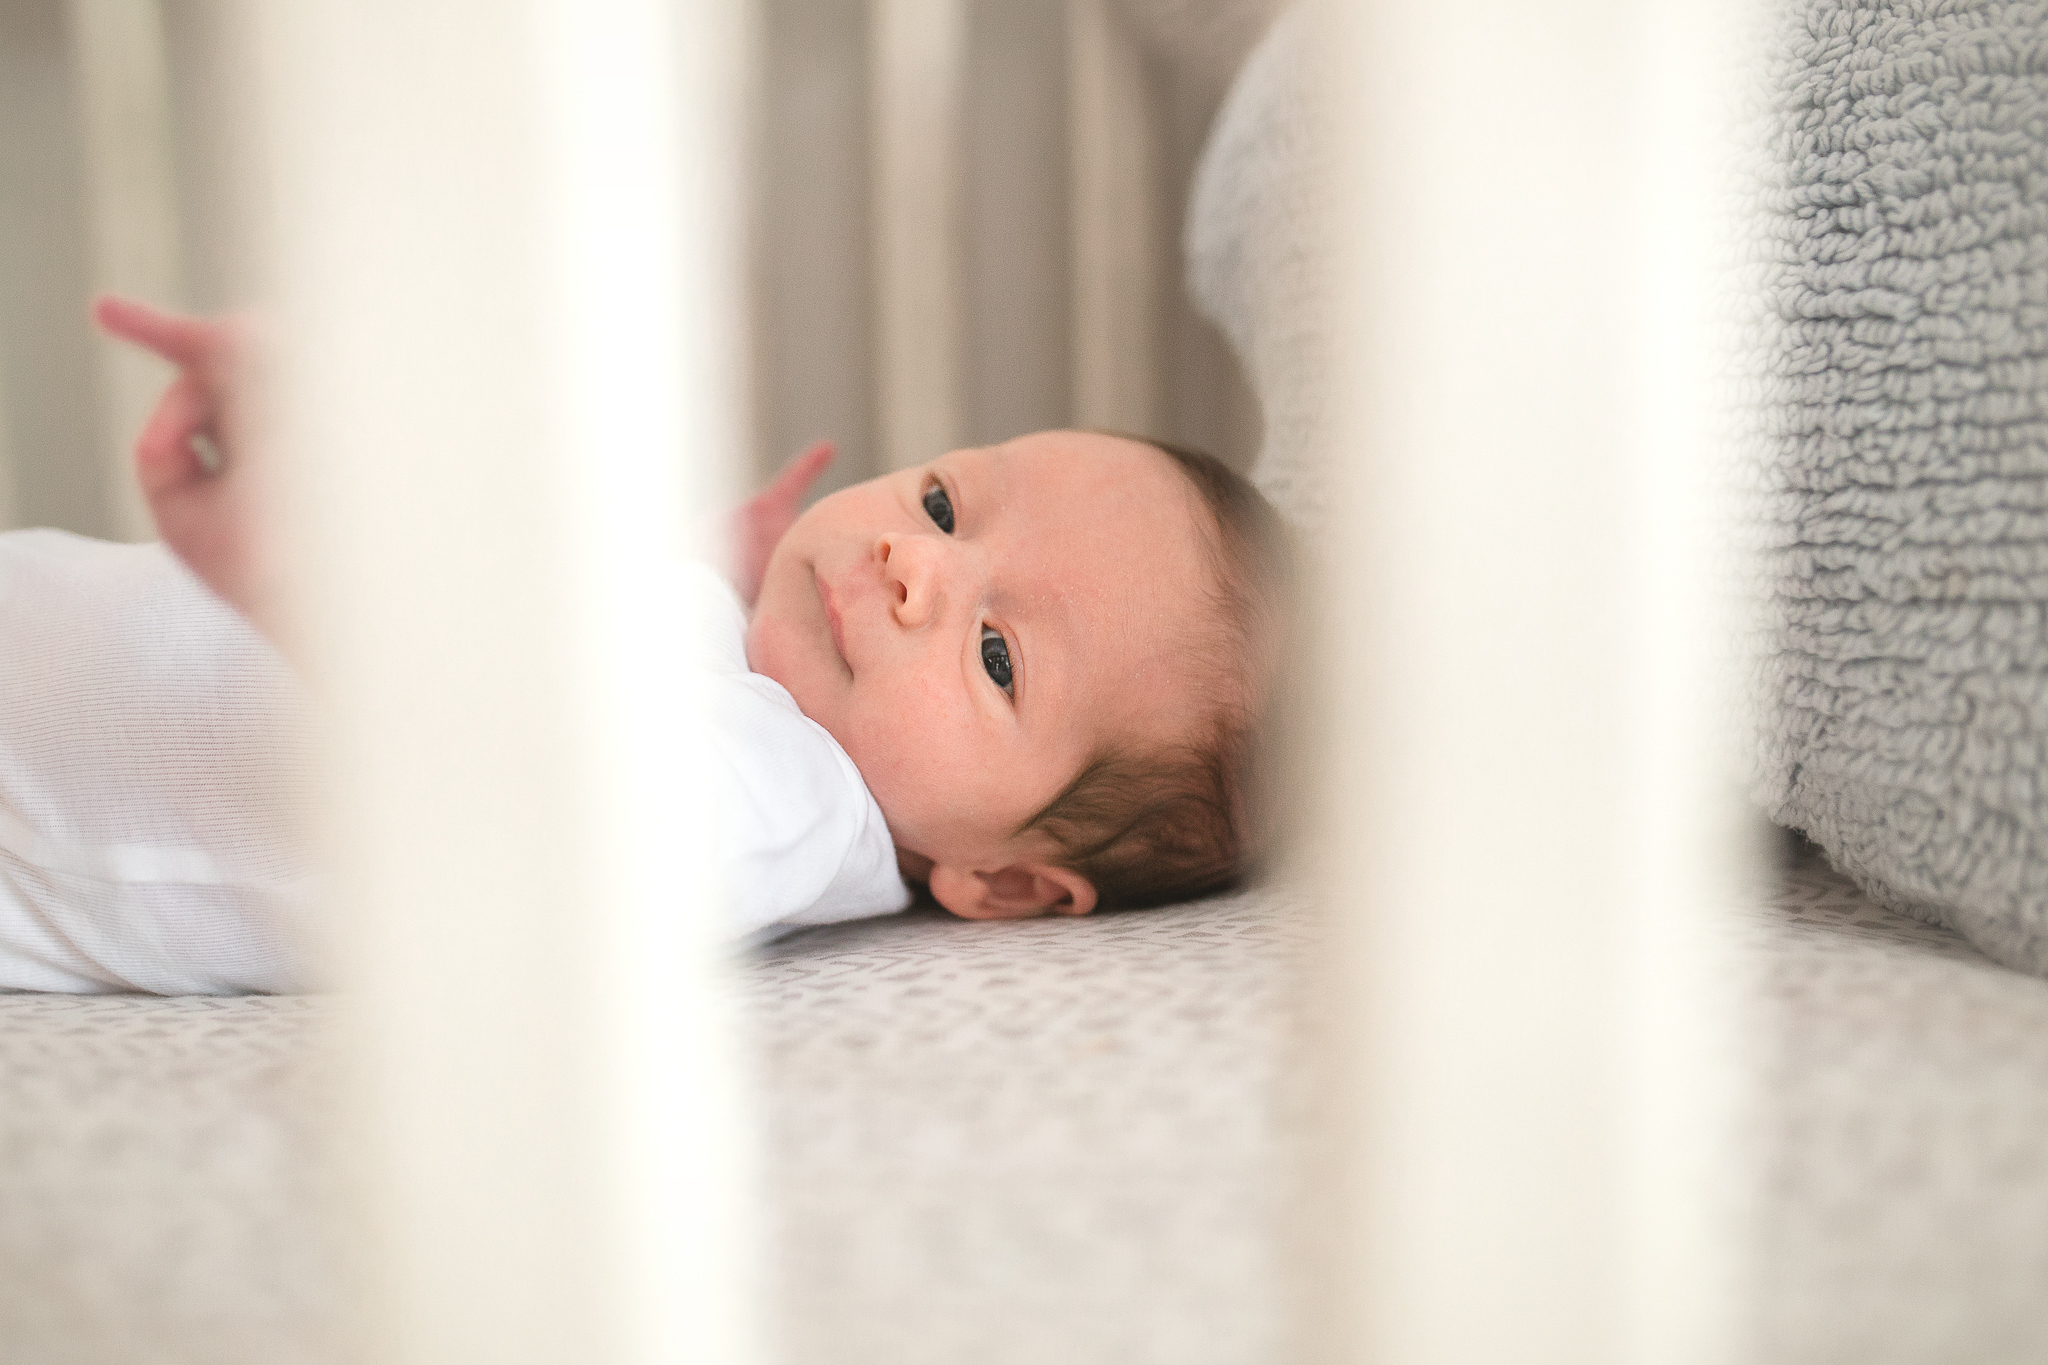 The gift insider were excited to bring you a lot more baby kid gift ideas and inspiration now that we are starting out on this new incredible chapter of our lives negle Image collections